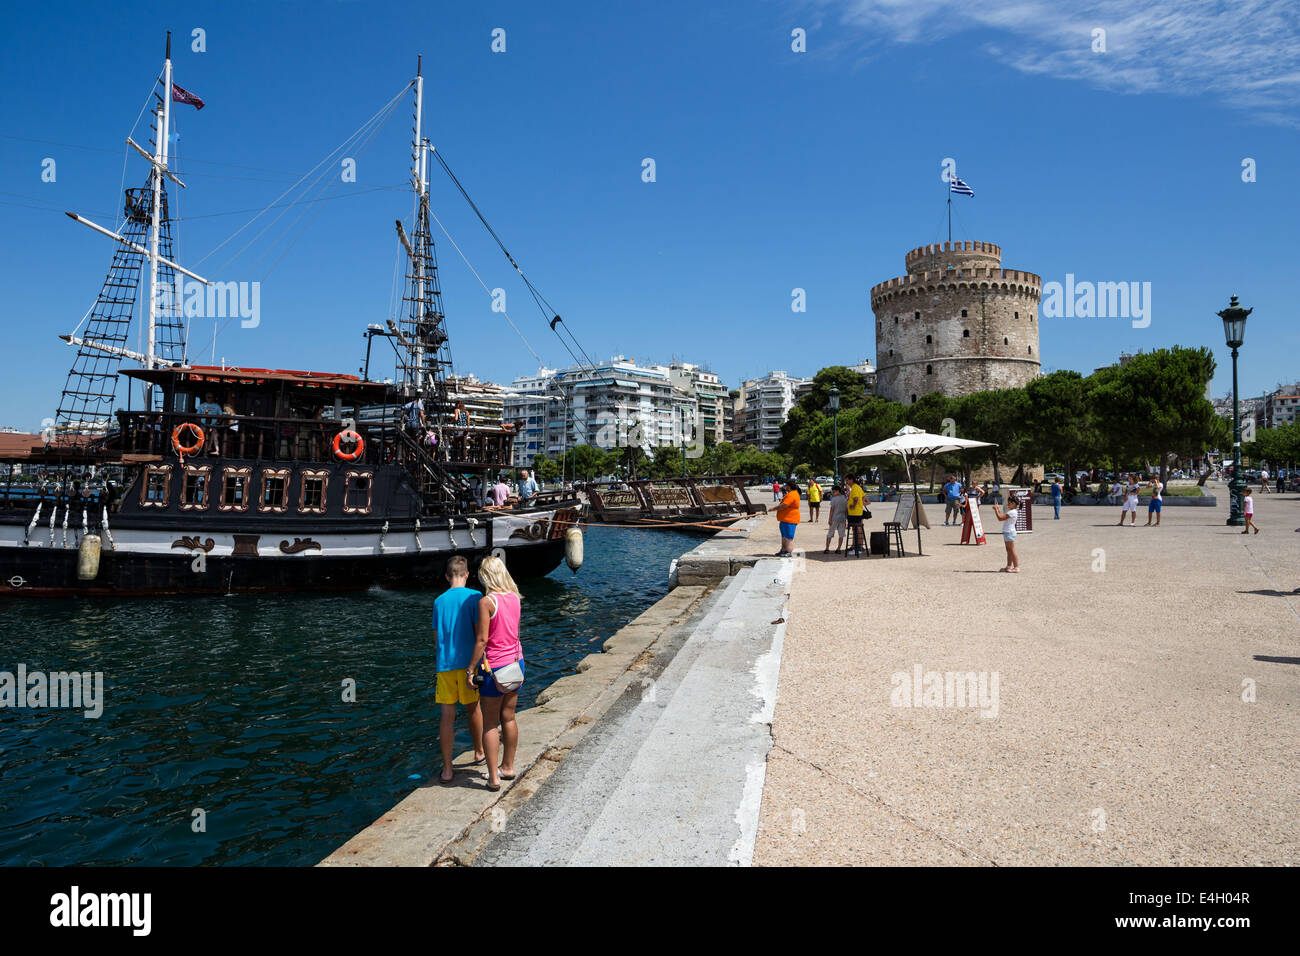 Thessaloniki, Greece. 11th July 2014. Tourists disembark from a cafe-bar boat in front of city's landmark, the - Stock Image